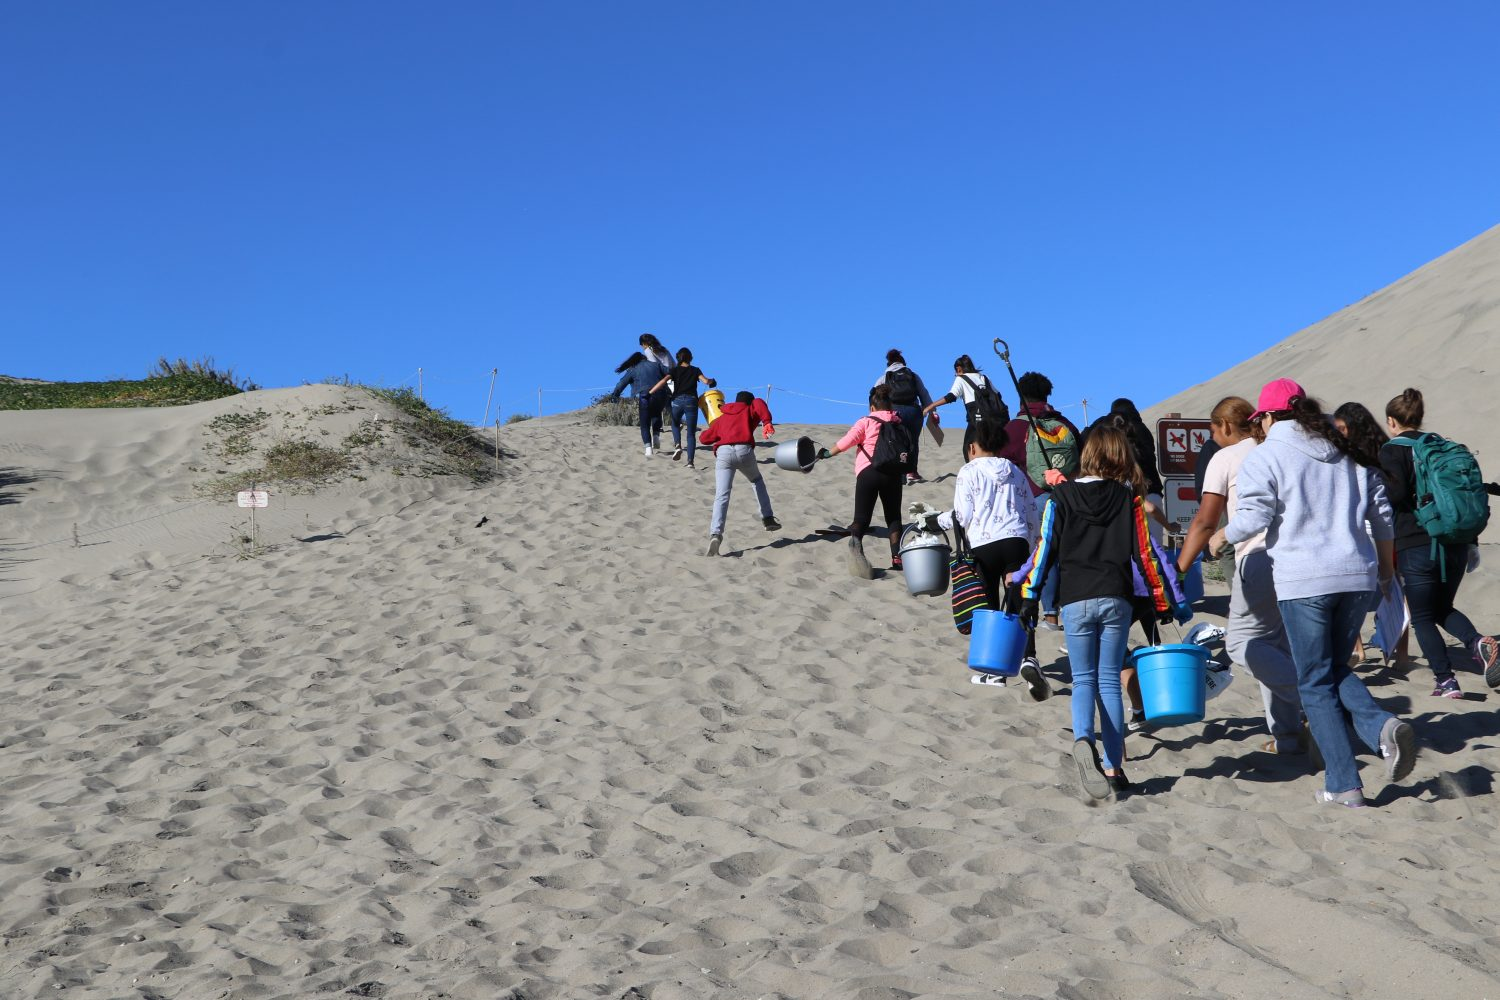 A dozen boys and girls walk up a sandy hill with buckets, gloves, and grabbers in hand on a clear blue day.